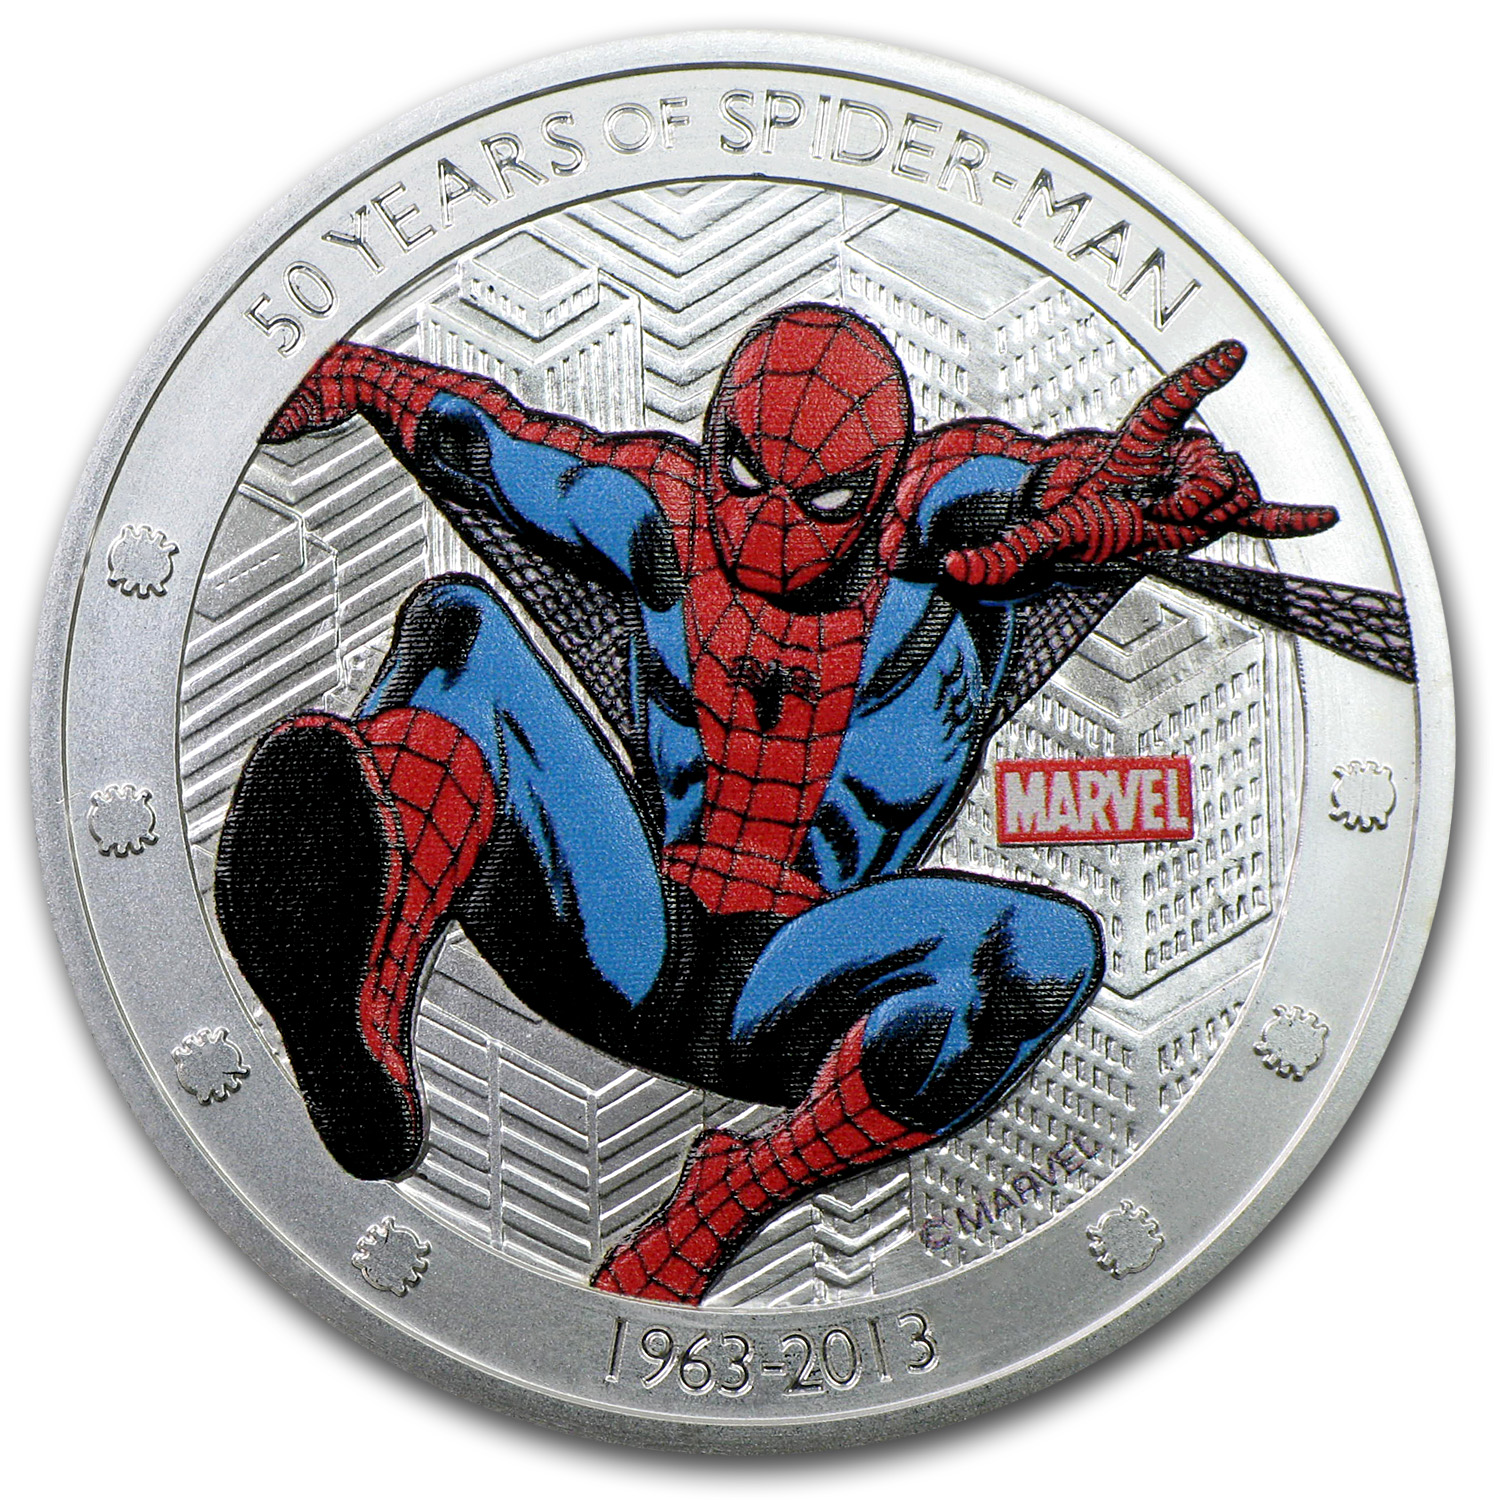 Niue 2013 1 oz Silver-50 Years of Spider-Man - COA Signed by Lee